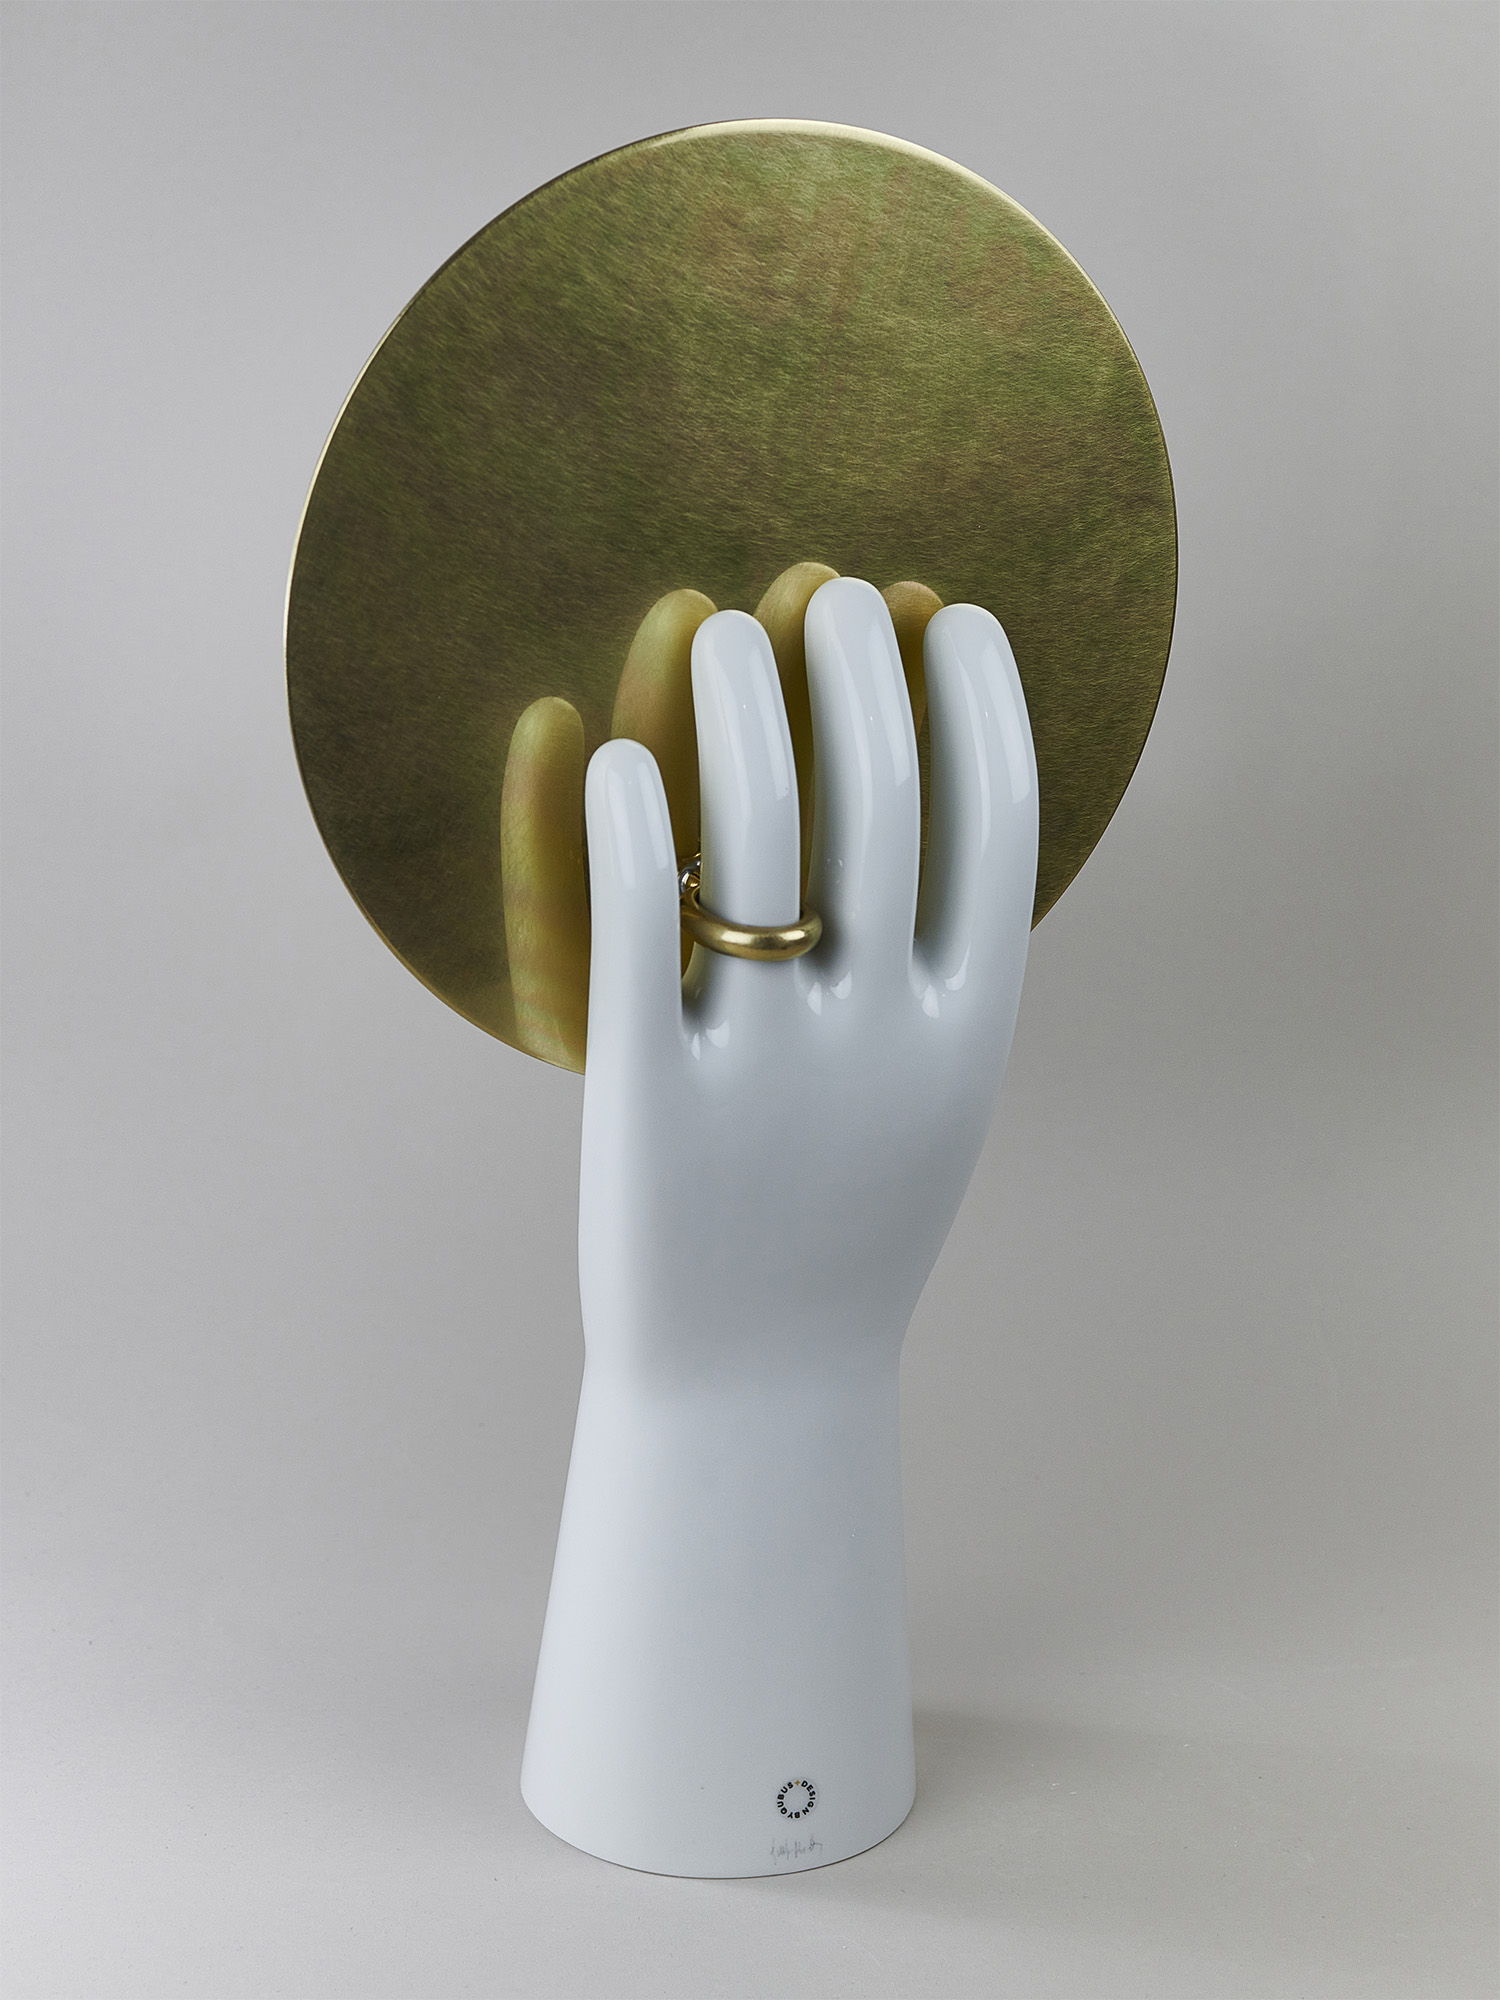 A mirror in a porcelain hand by Qubus design studio